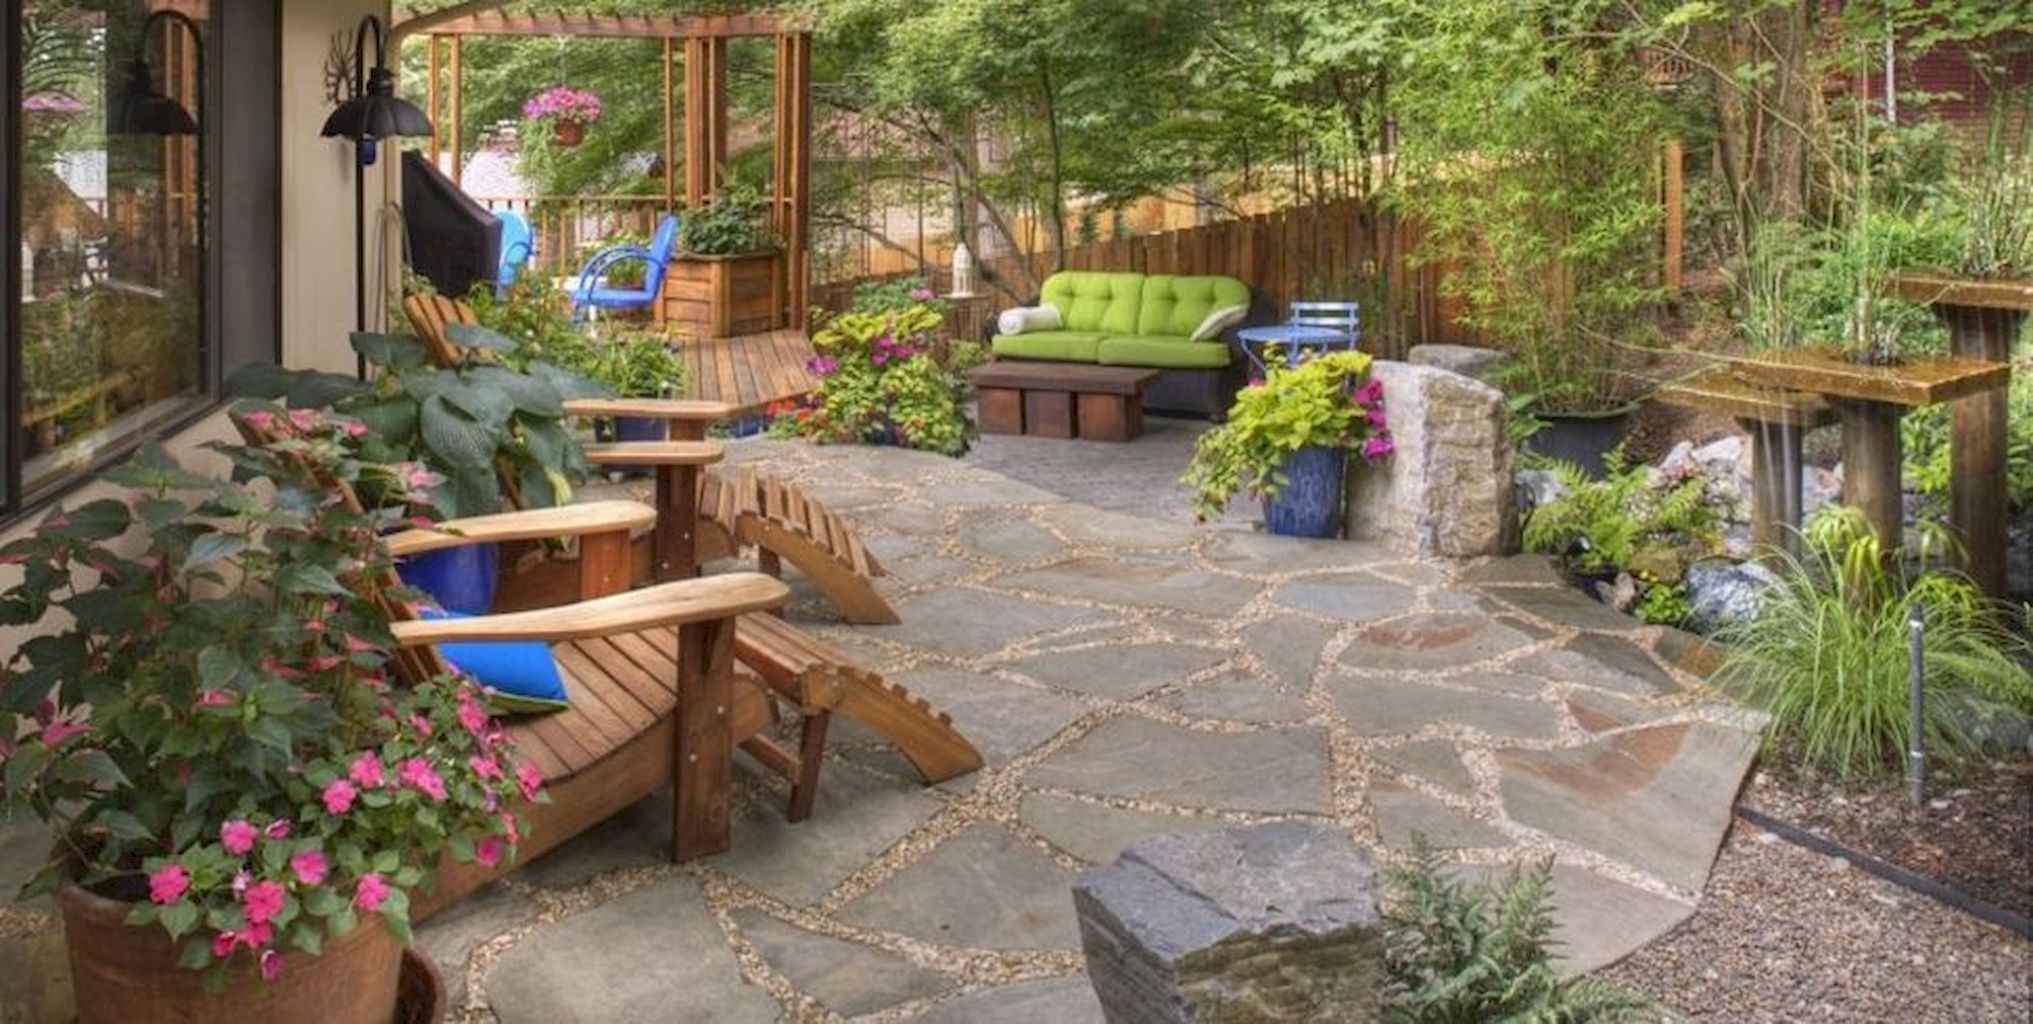 40 Rustic Backyard Design Ideas And Remodel 34 Roomadness Com